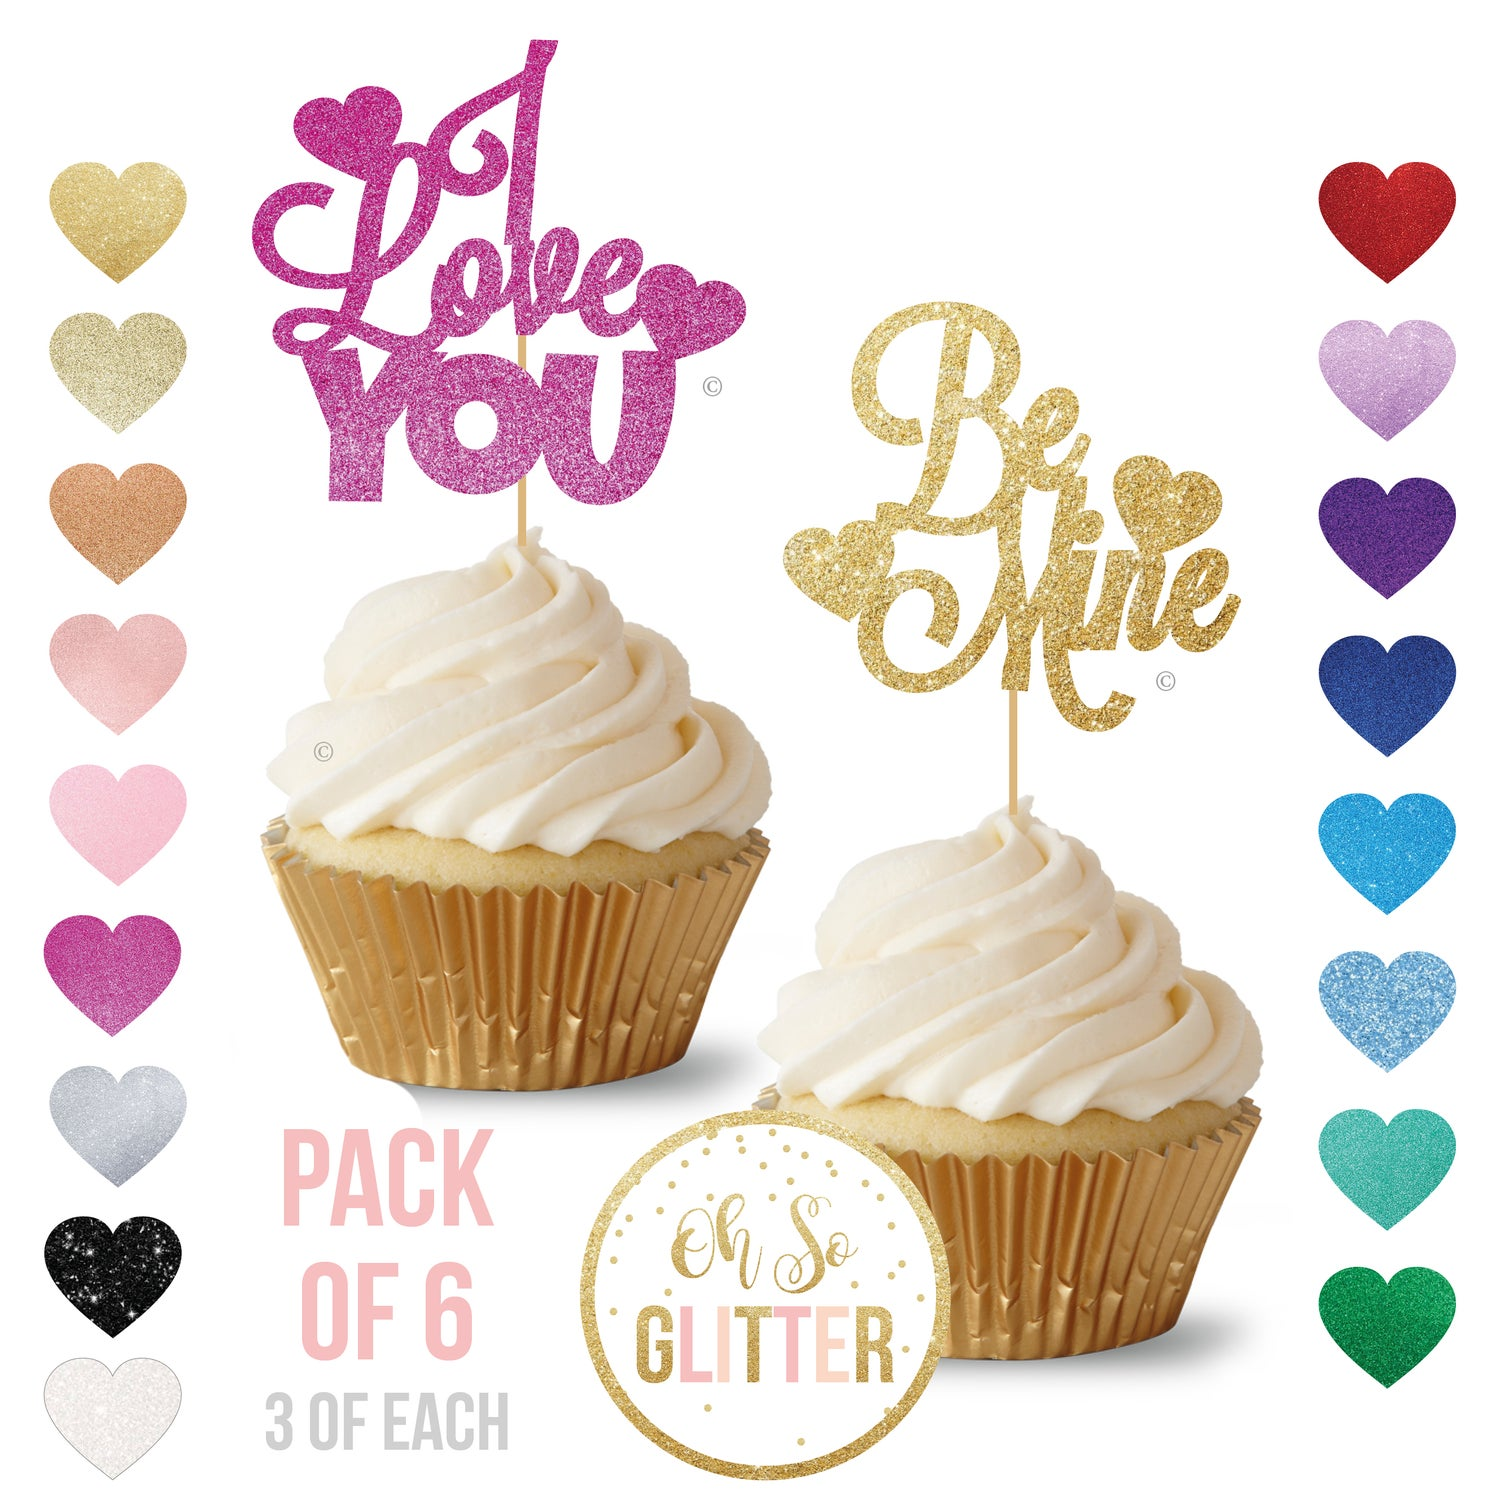 Image of Valentines Day Cupcake Toppers - pack of 6